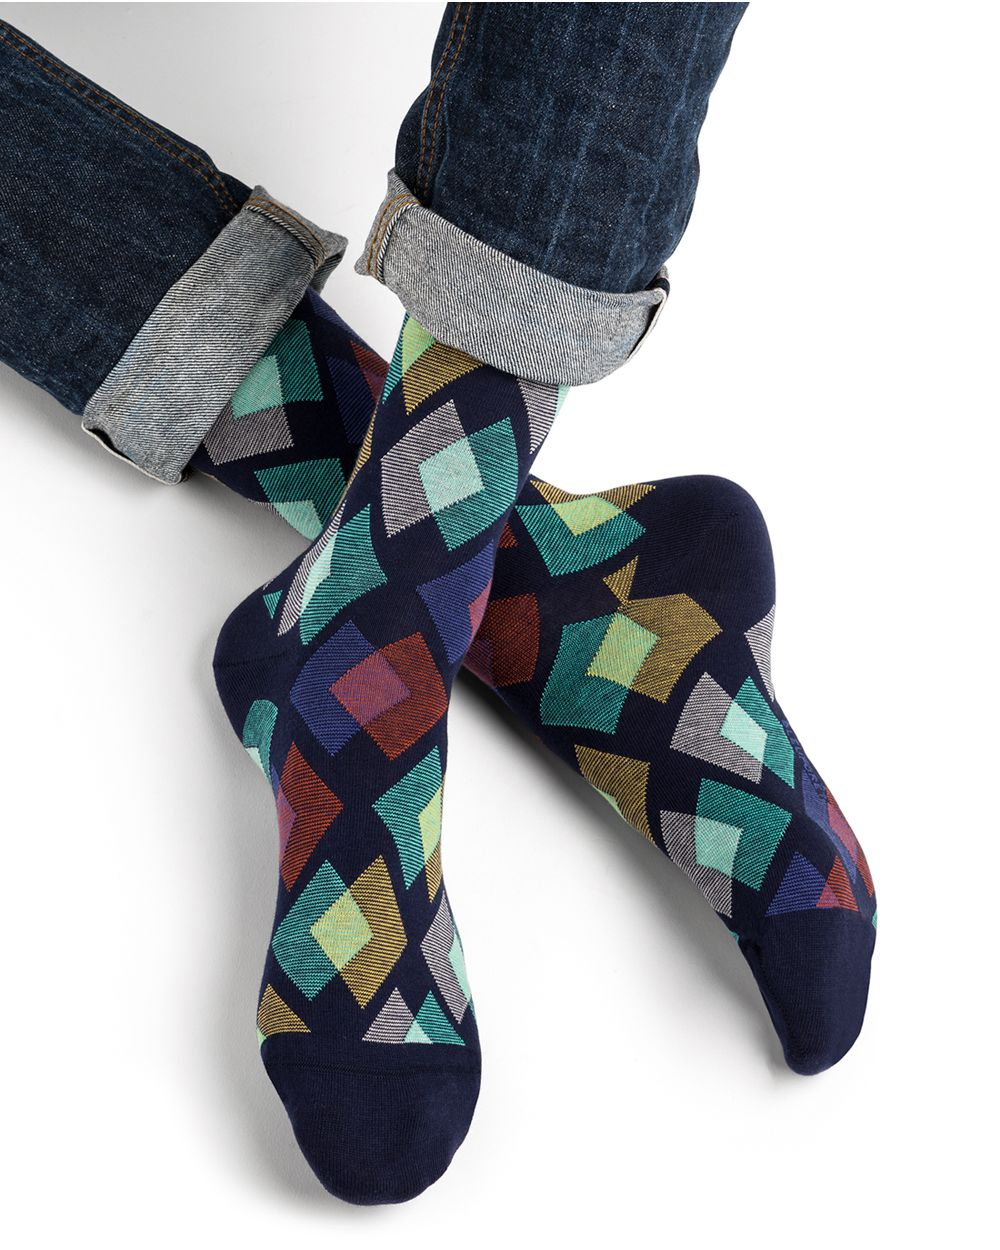 Diamond striped cotton socks